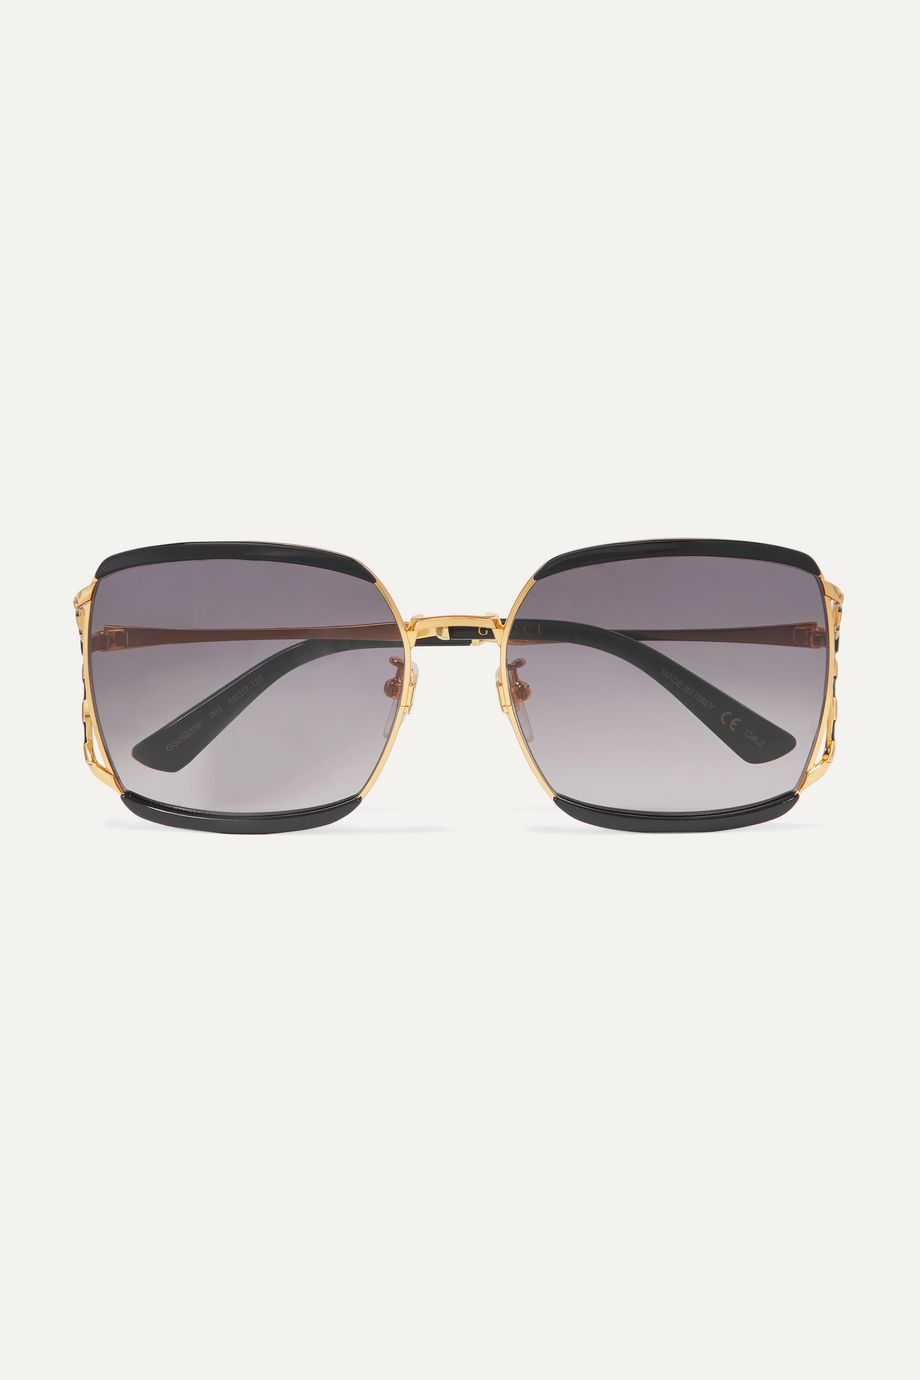 Gucci Fork square-frame acetate and gold-tone sunglasses